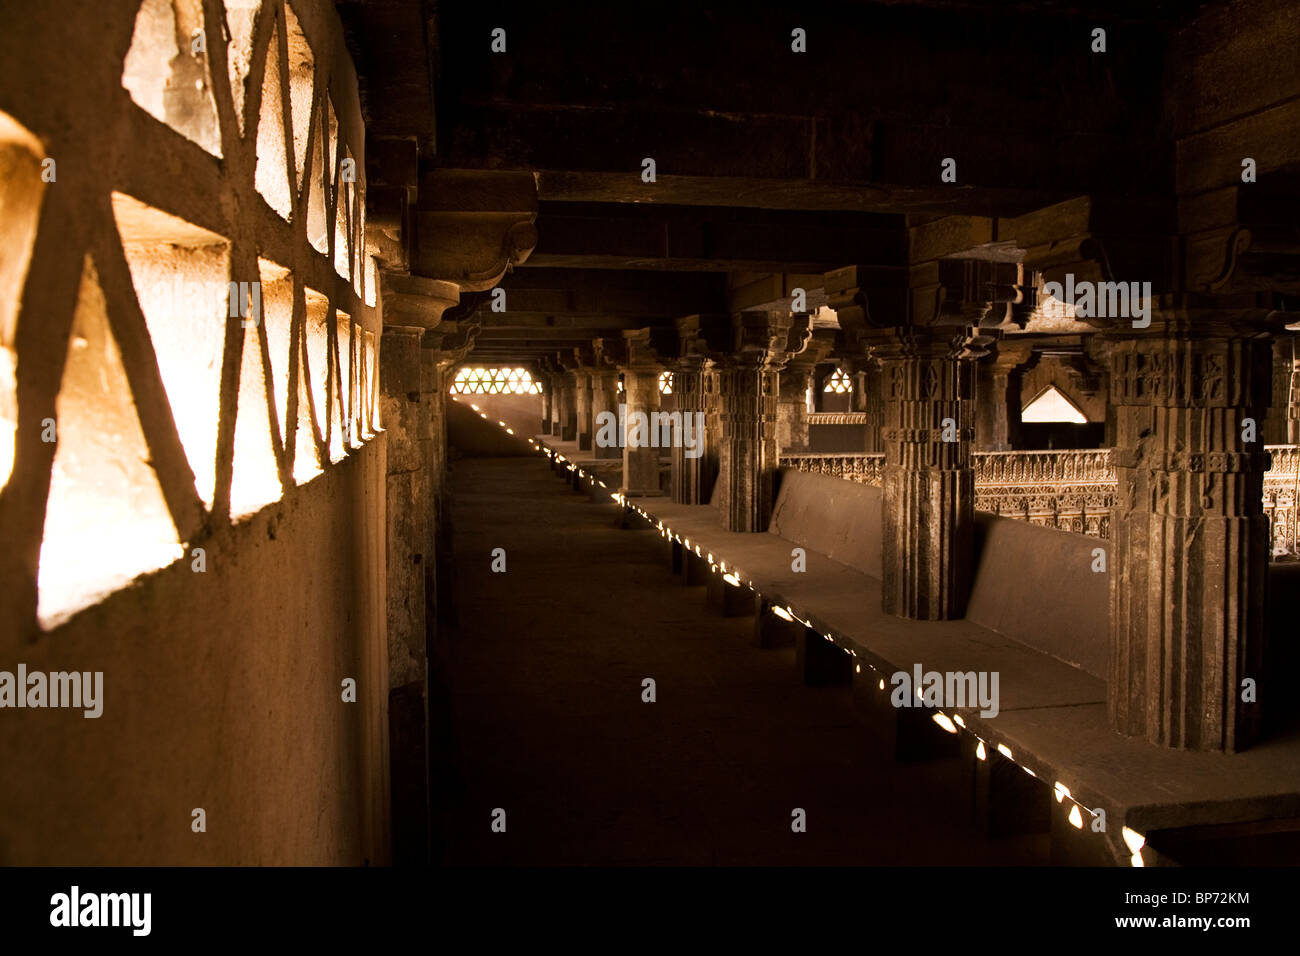 A shaded area within the prayer hall of the Jama Masjid (Friday Mosque) in Ahmedabad, Gujarat, India. - Stock Image